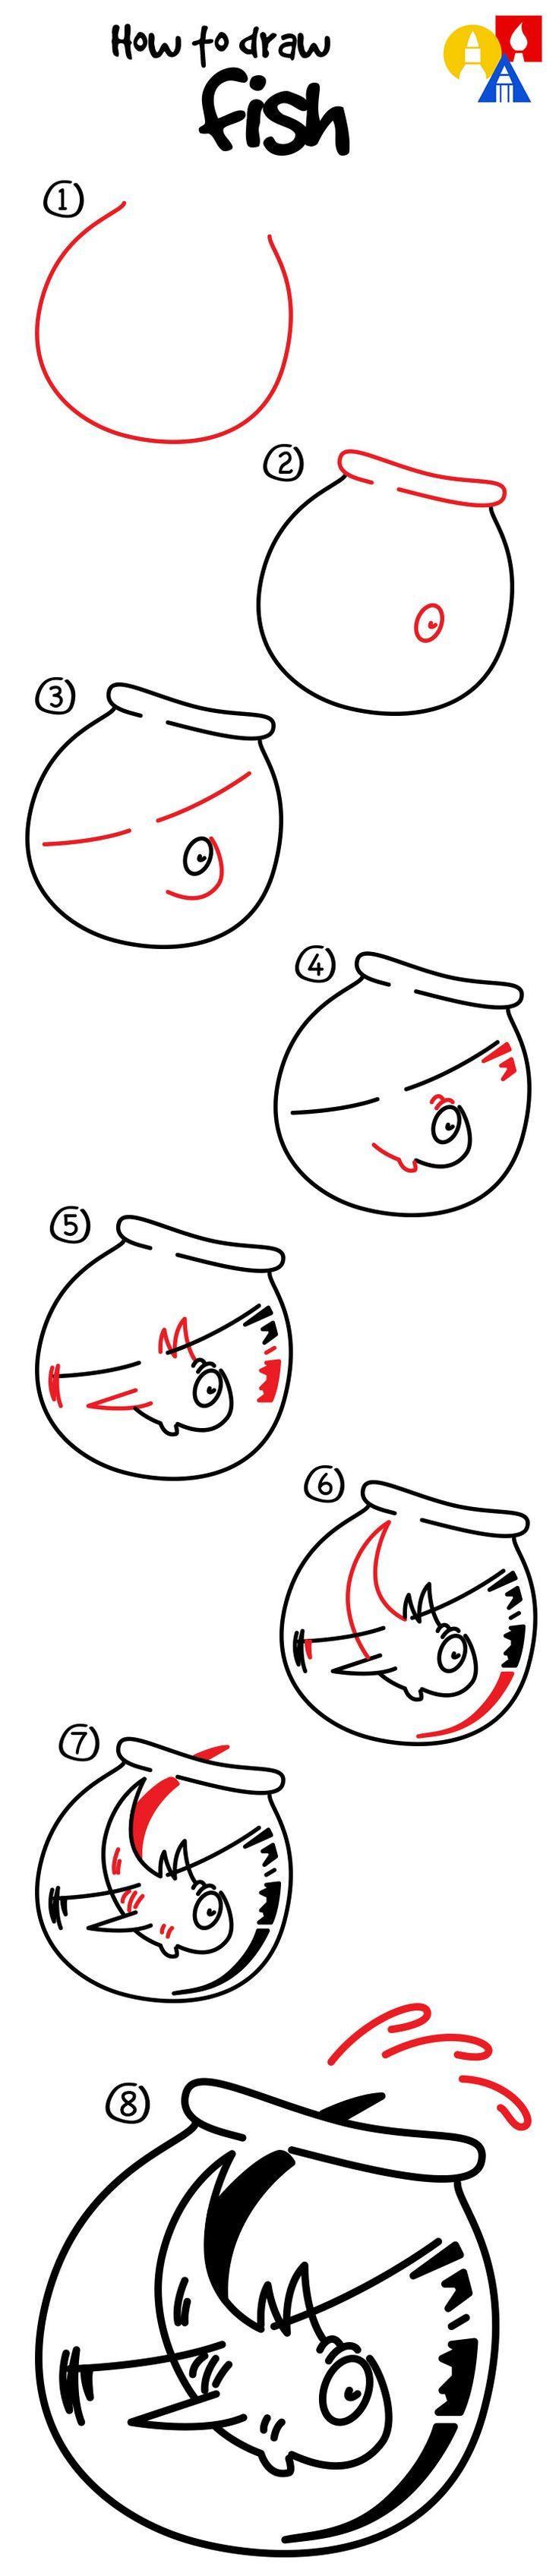 How To Draw Fish From The Cat In The Hat Art For Kids Hub Dr